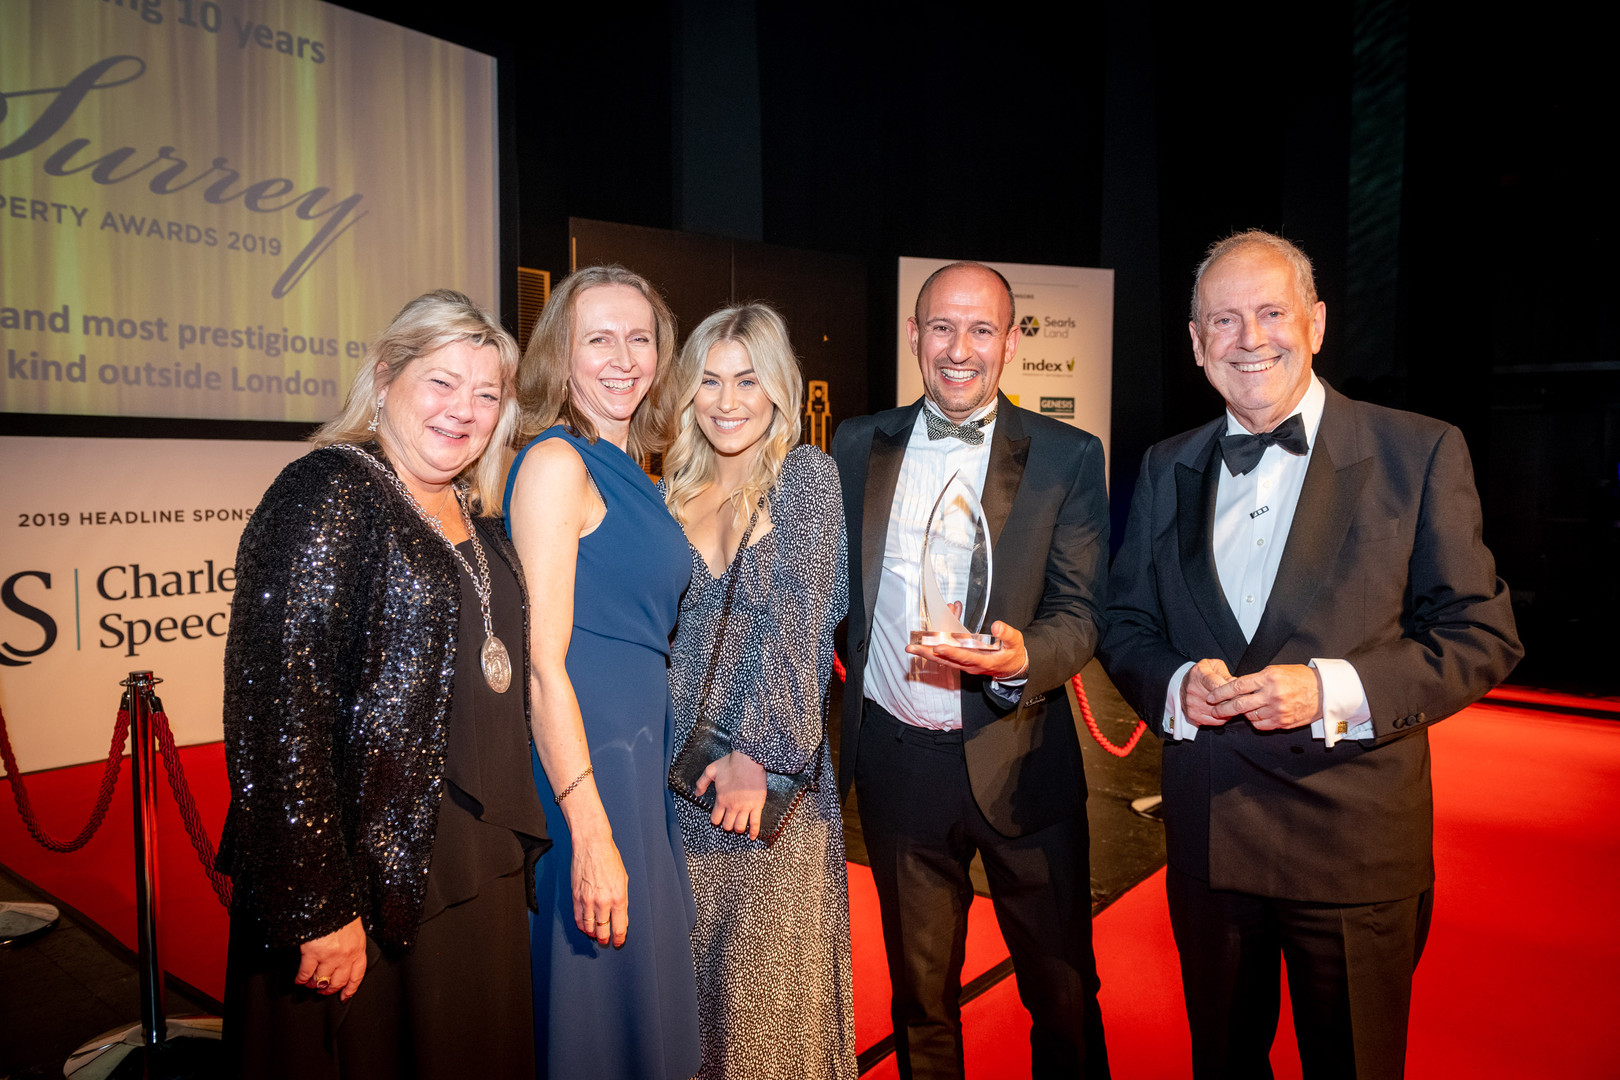 SurreyPropertyAwards_Nov2019_377.jpg